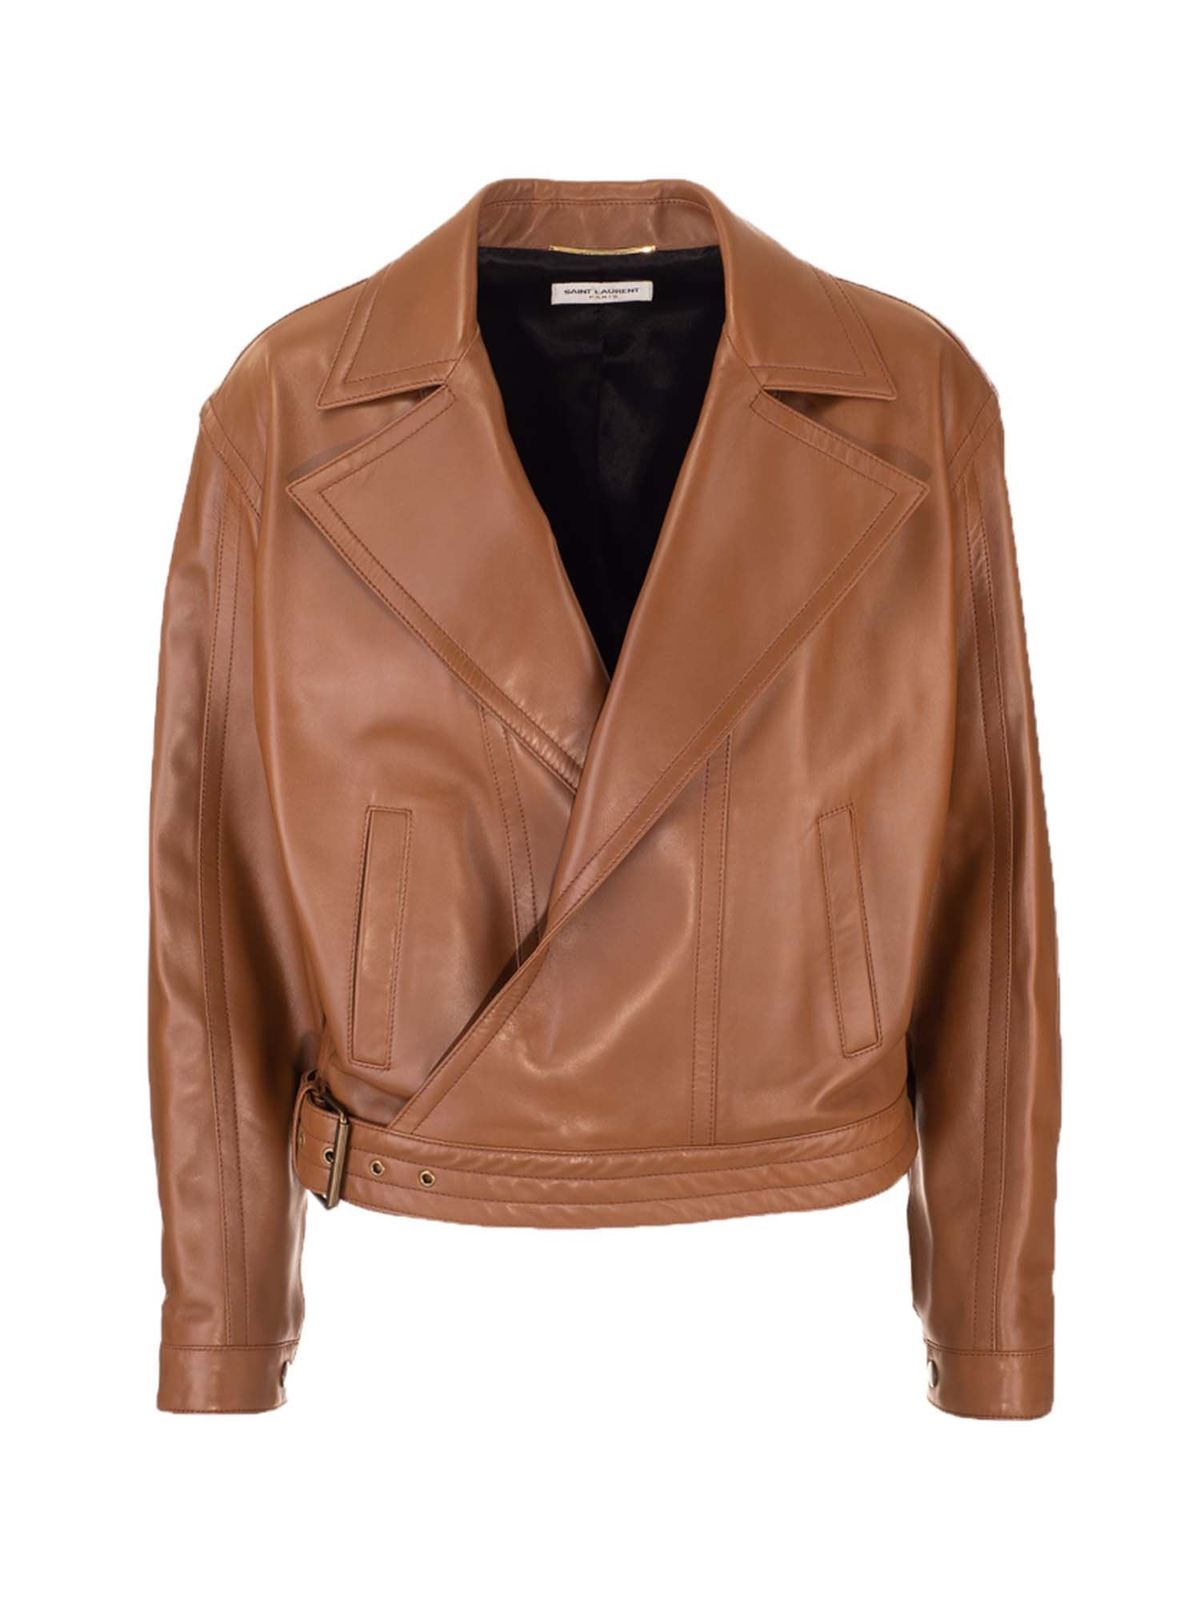 Saint Laurent OVERSIZED BIKER JACKET IN CAMEL